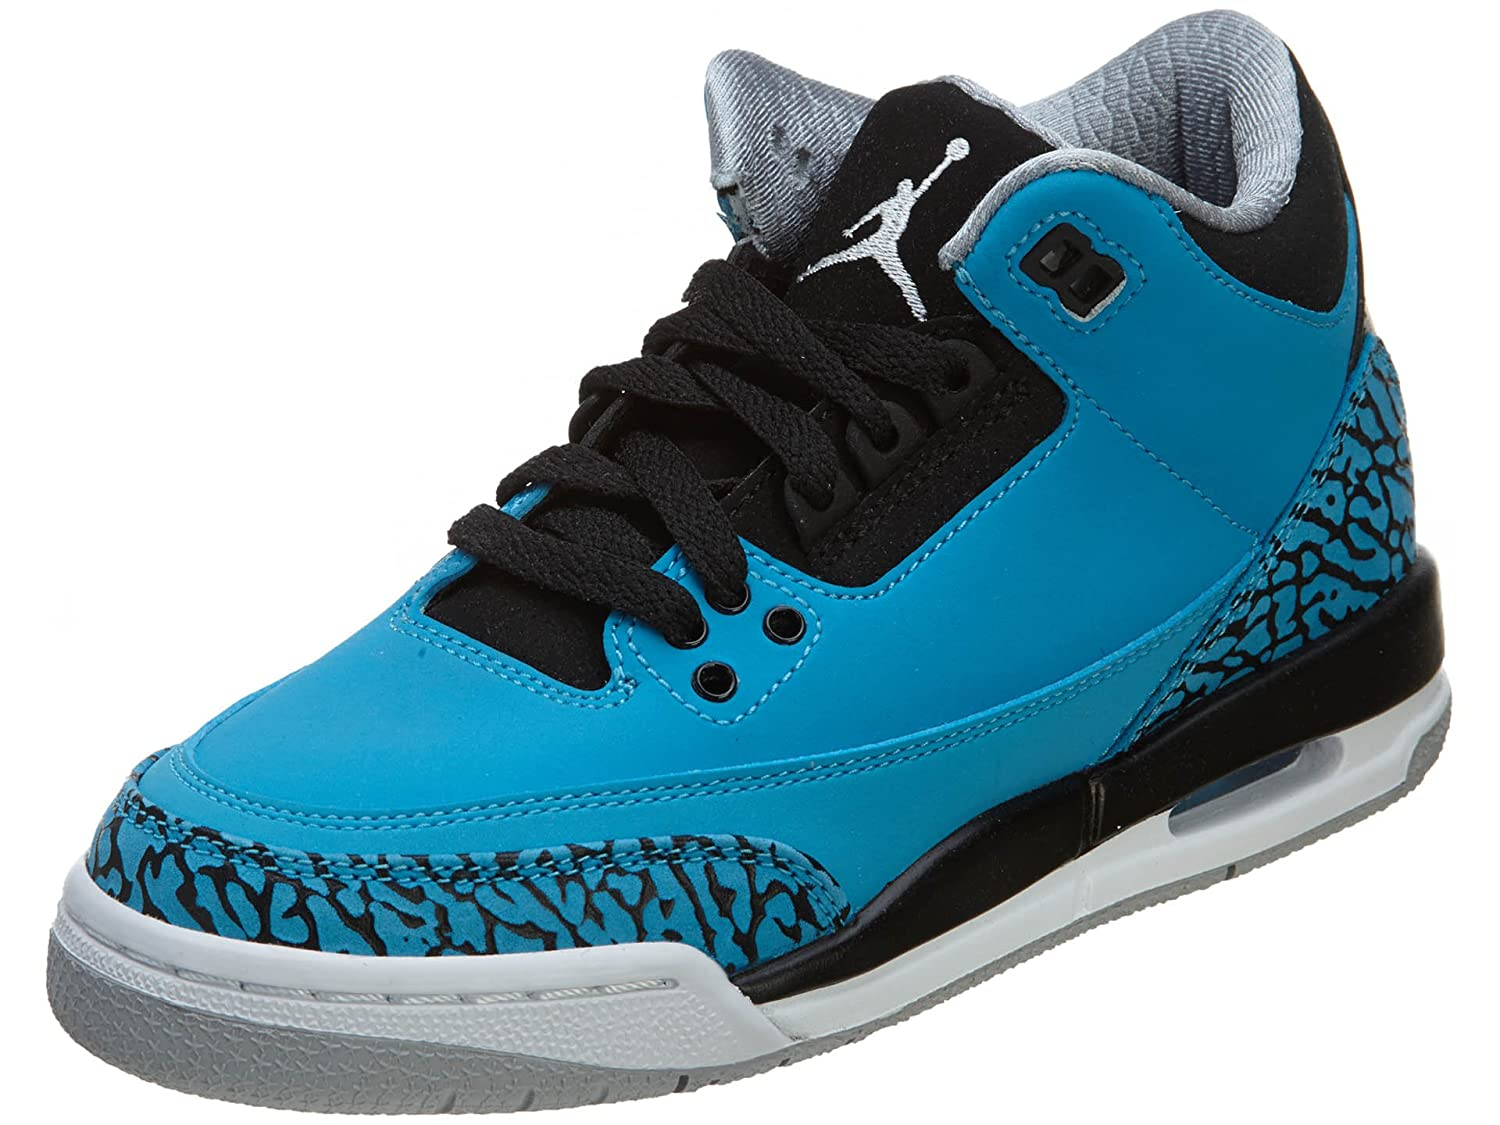 Amazon.com | Nike Air Jordan 3 Retro BG [398614-406] Kids Casual Shoes Powder Blue/White | Basketball